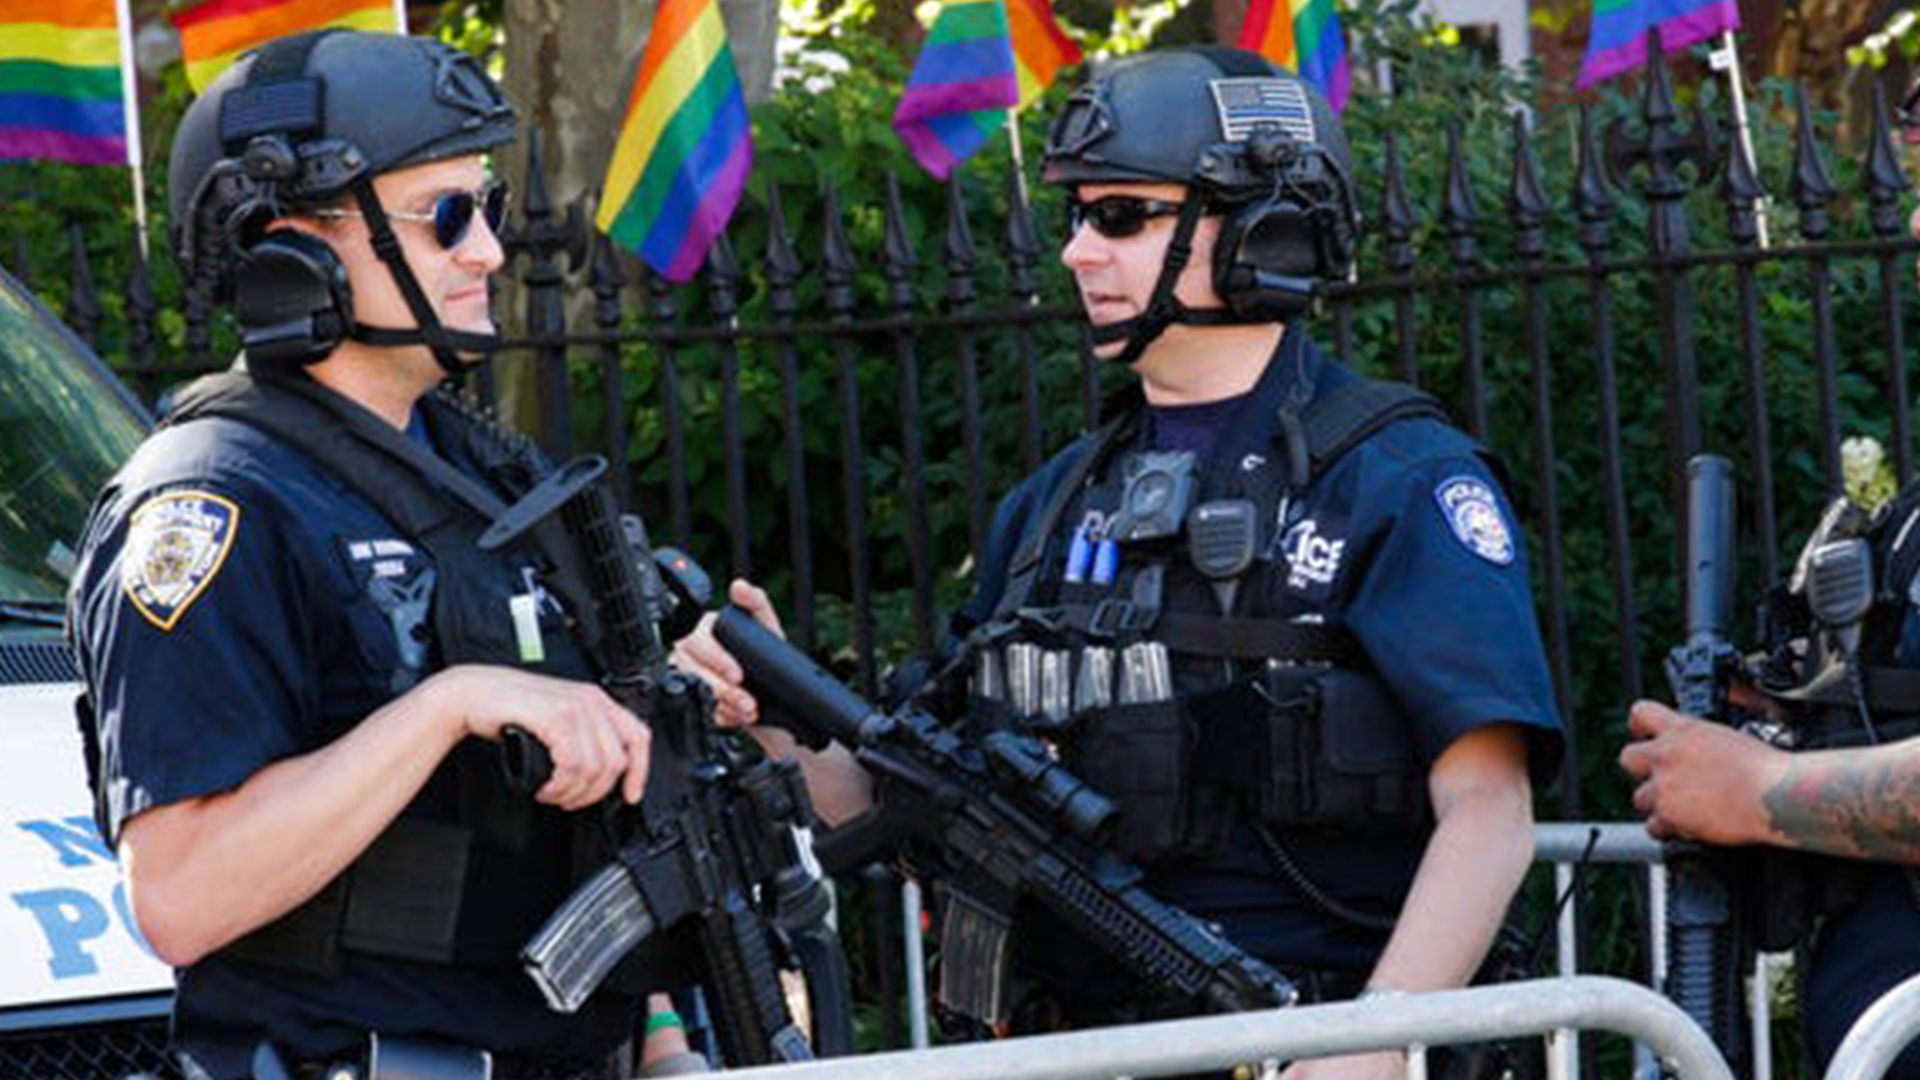 Should Cops Be Banned from Pride?